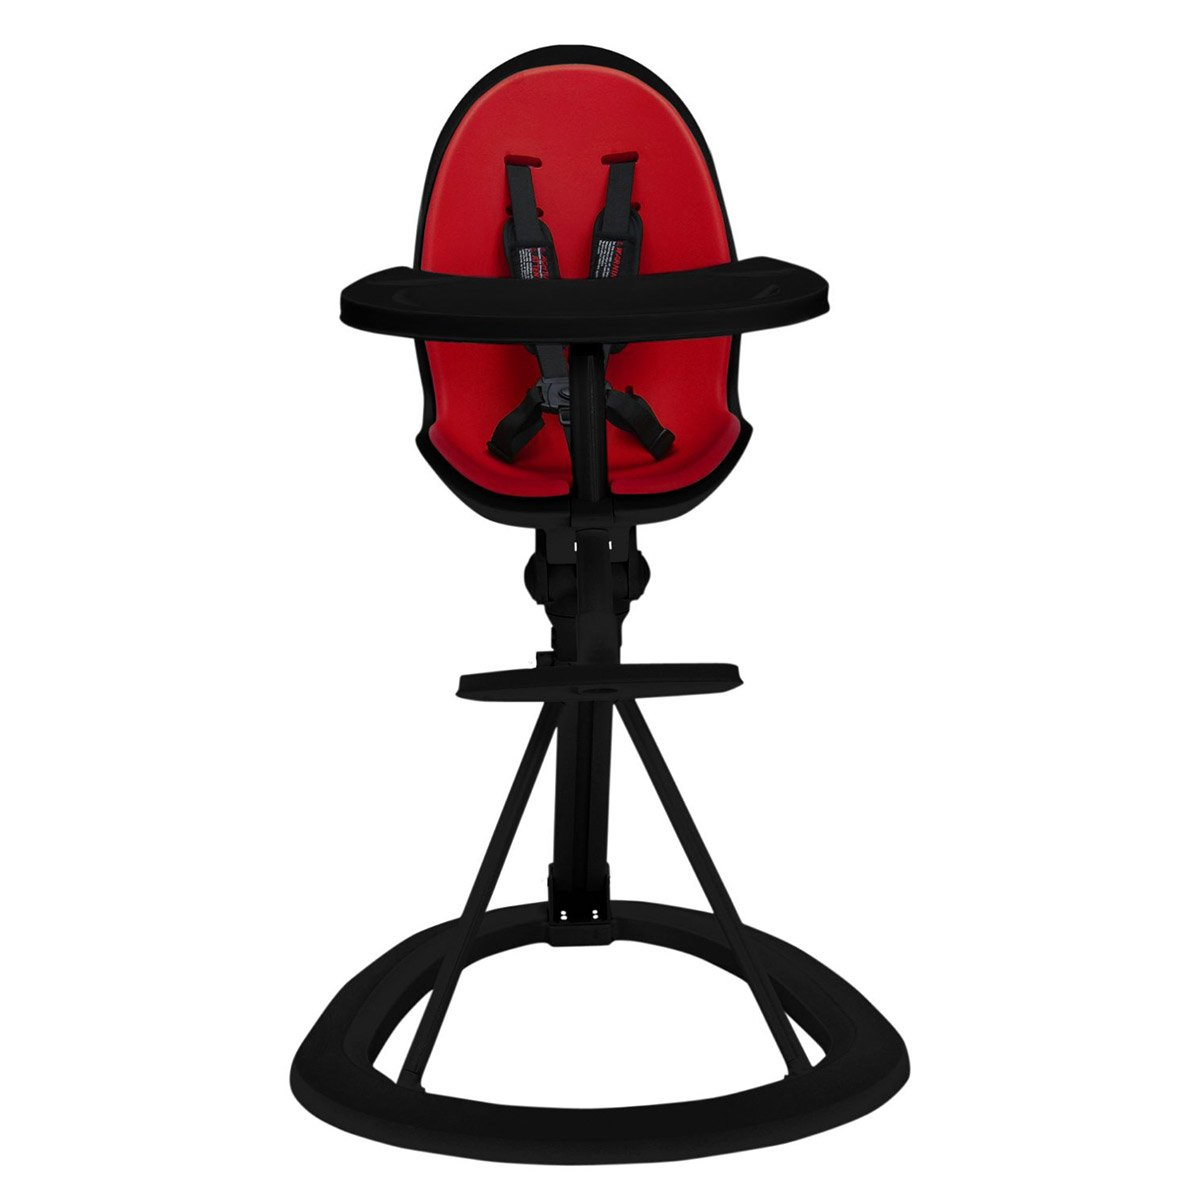 Feature Packed Feeding High Chair in Red on Black Colour Combination Ickle Bubba Orb Baby Highchair